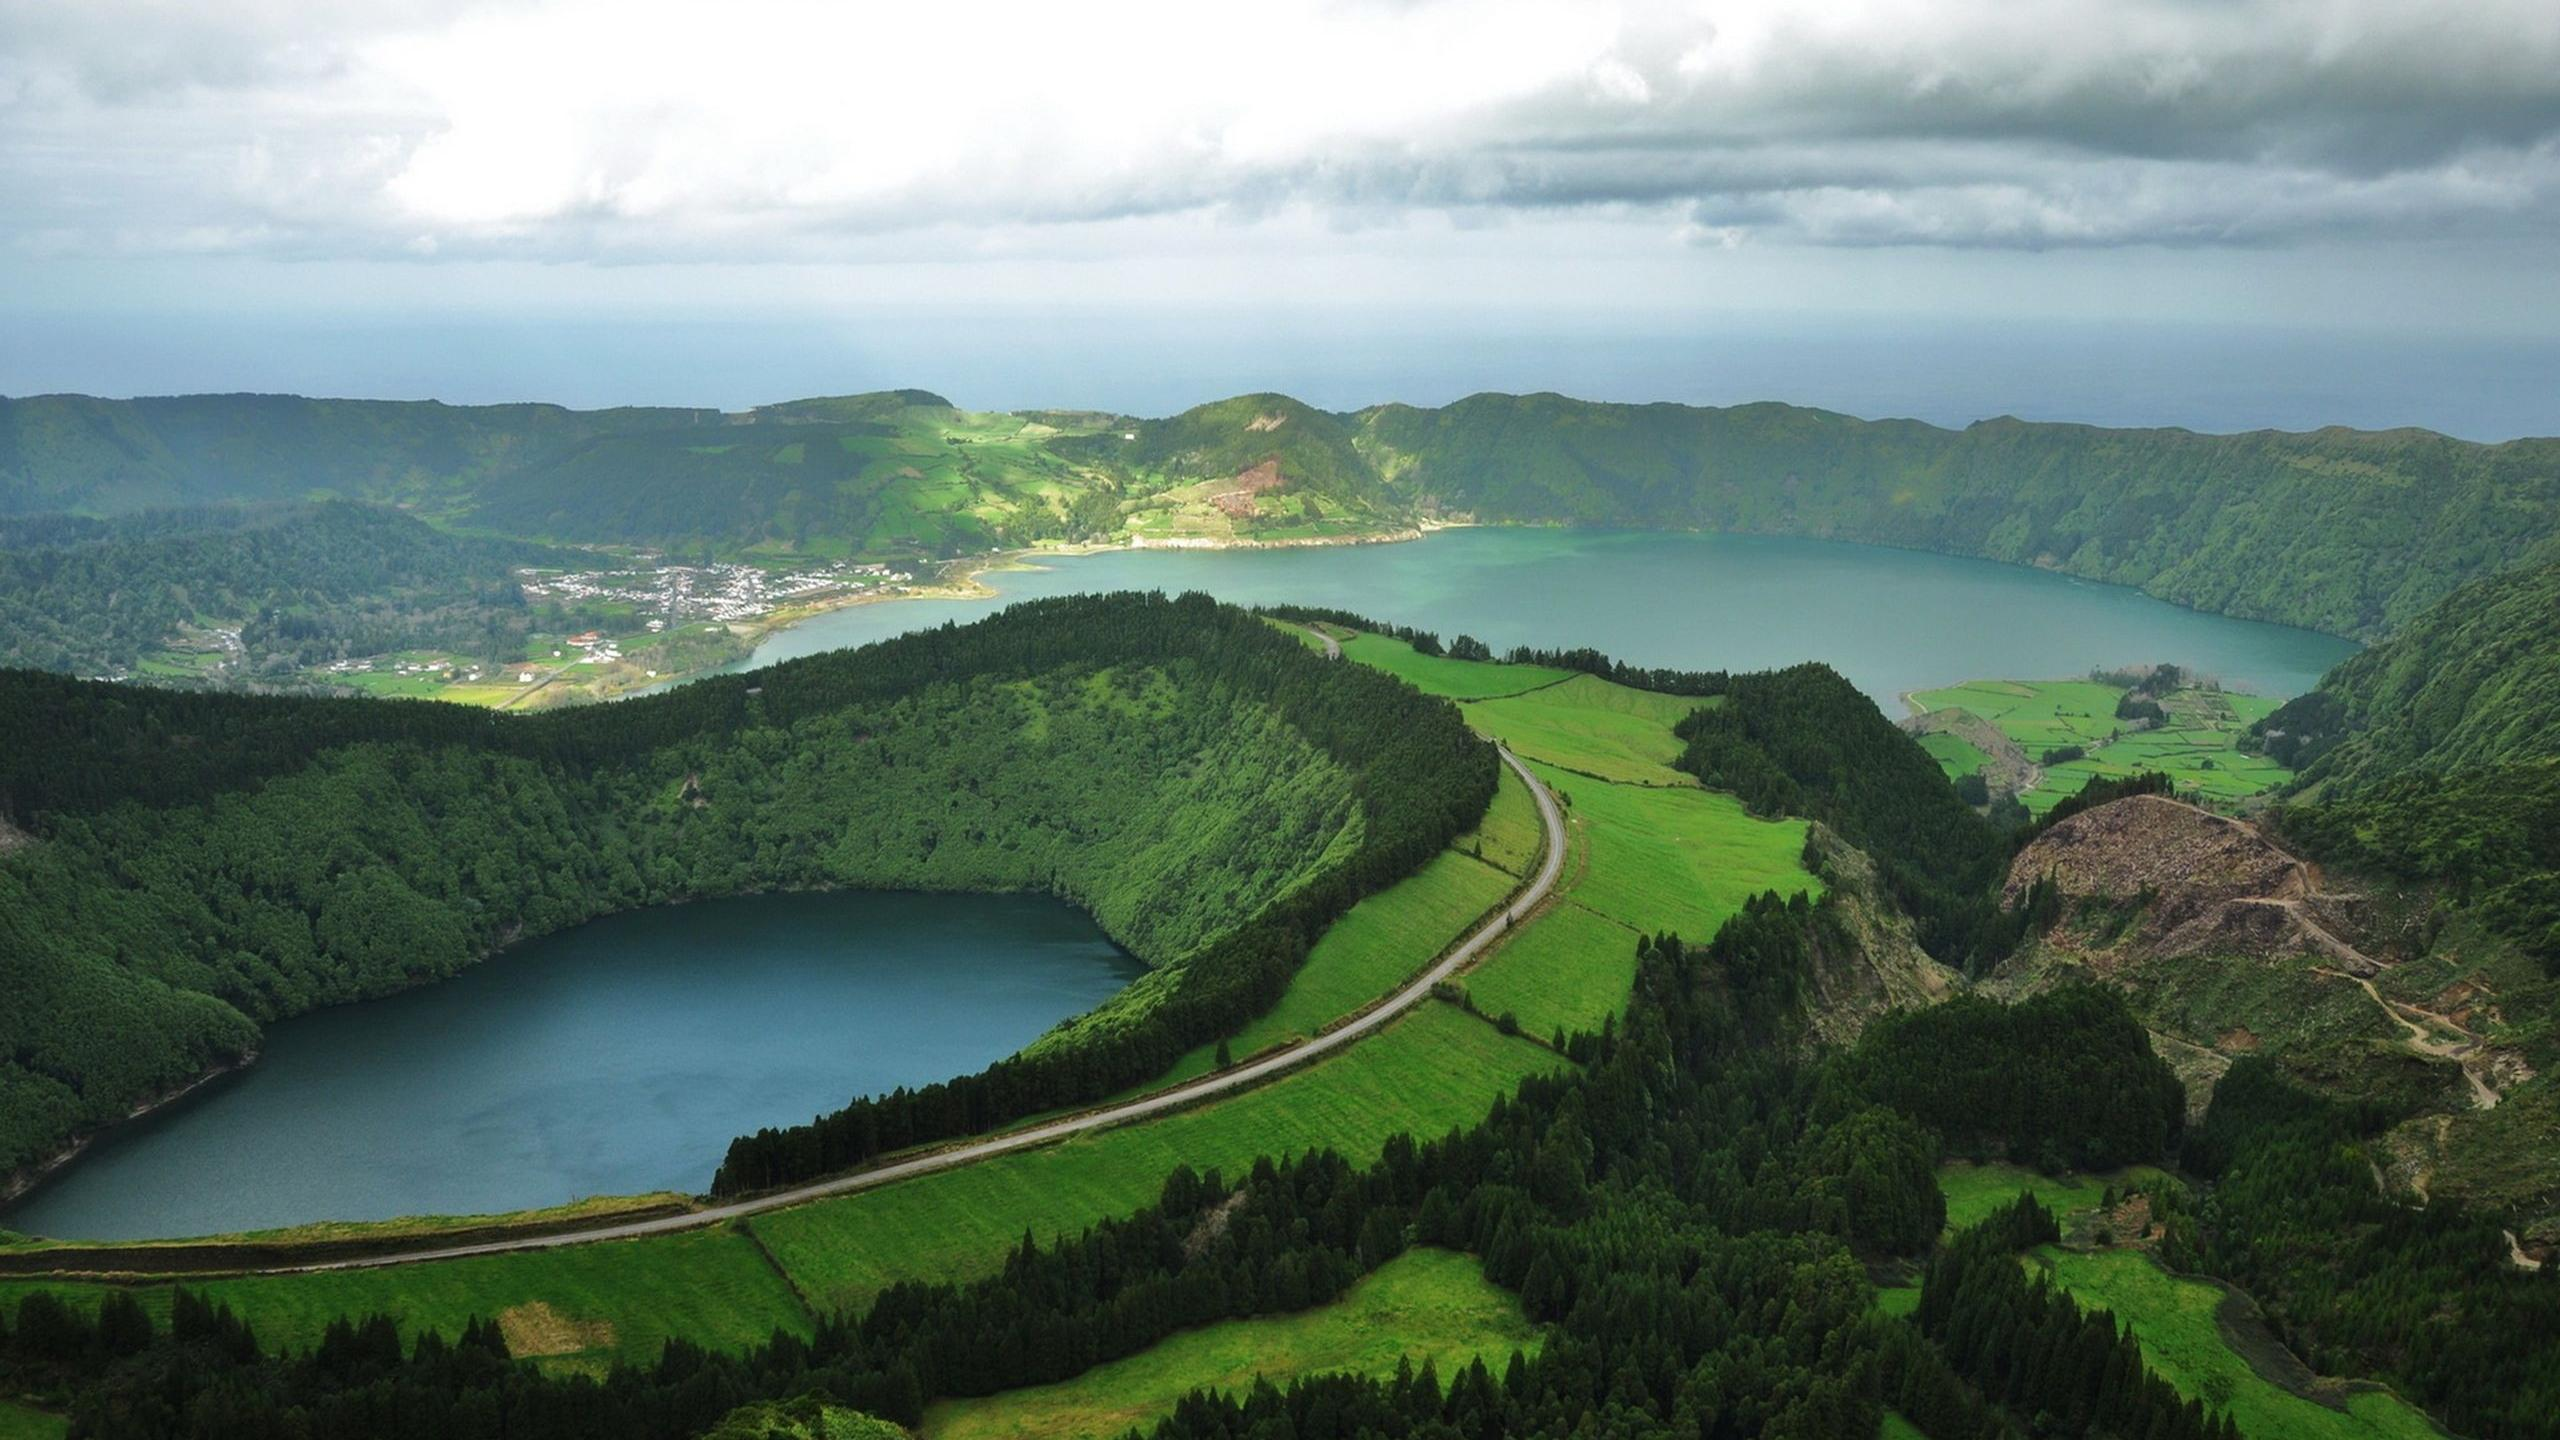 Dangerous Natural Pool Holiday, Salty basins, Azores Island, Aerial view